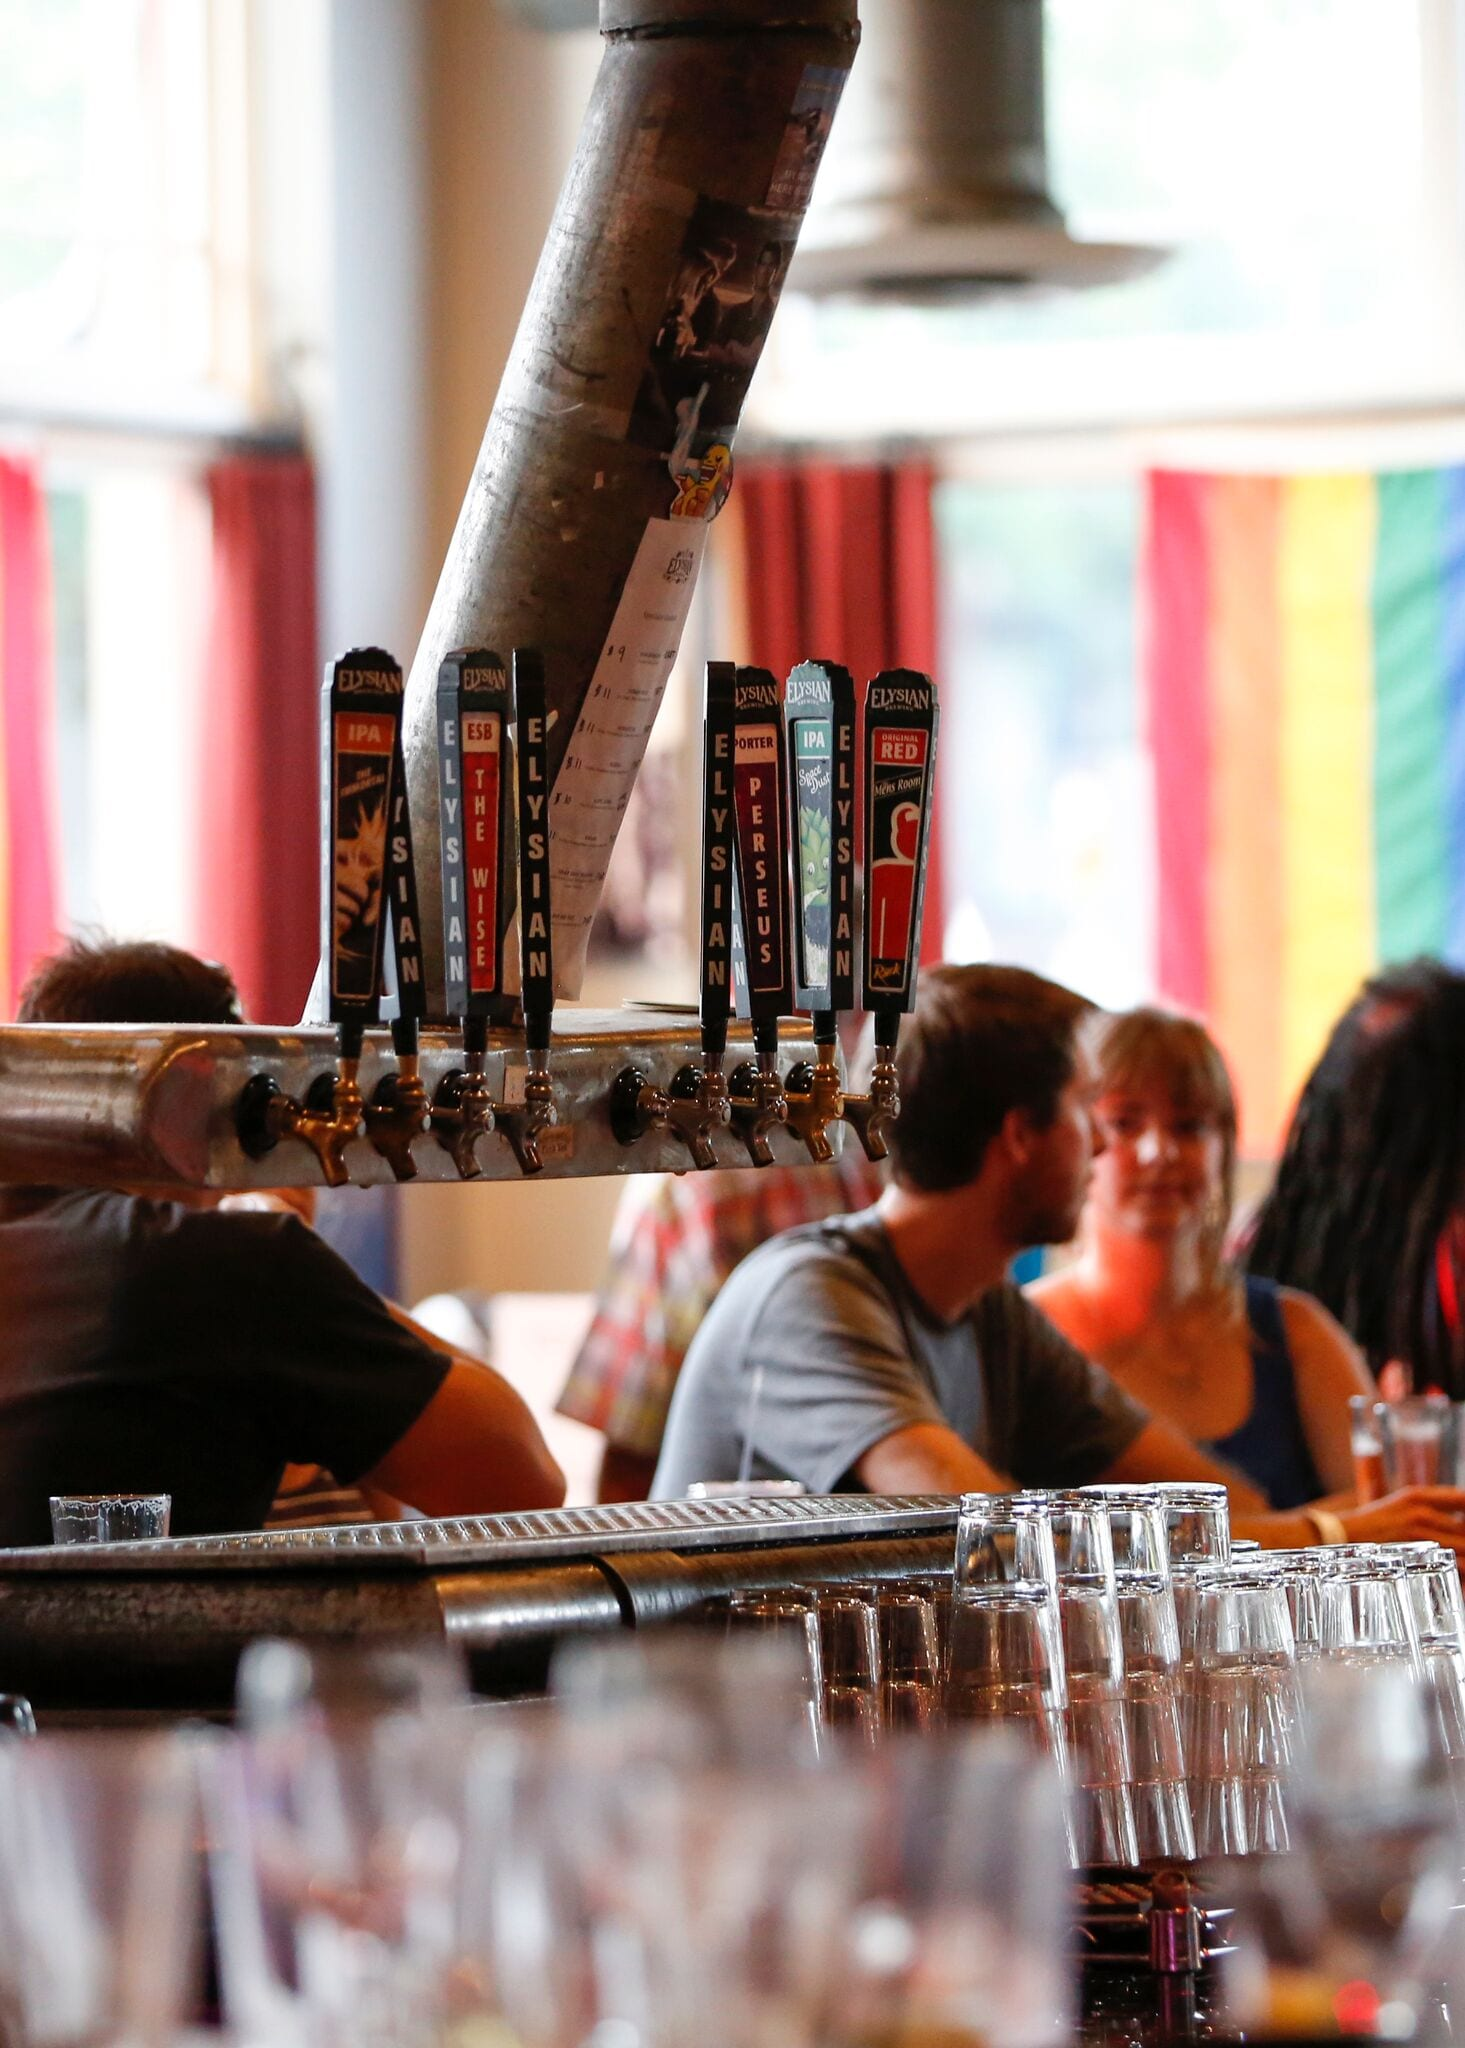 With OK on long-delayed construction, Elysian set to join Optimism and Redhook in Capitol Hill beer upgrades